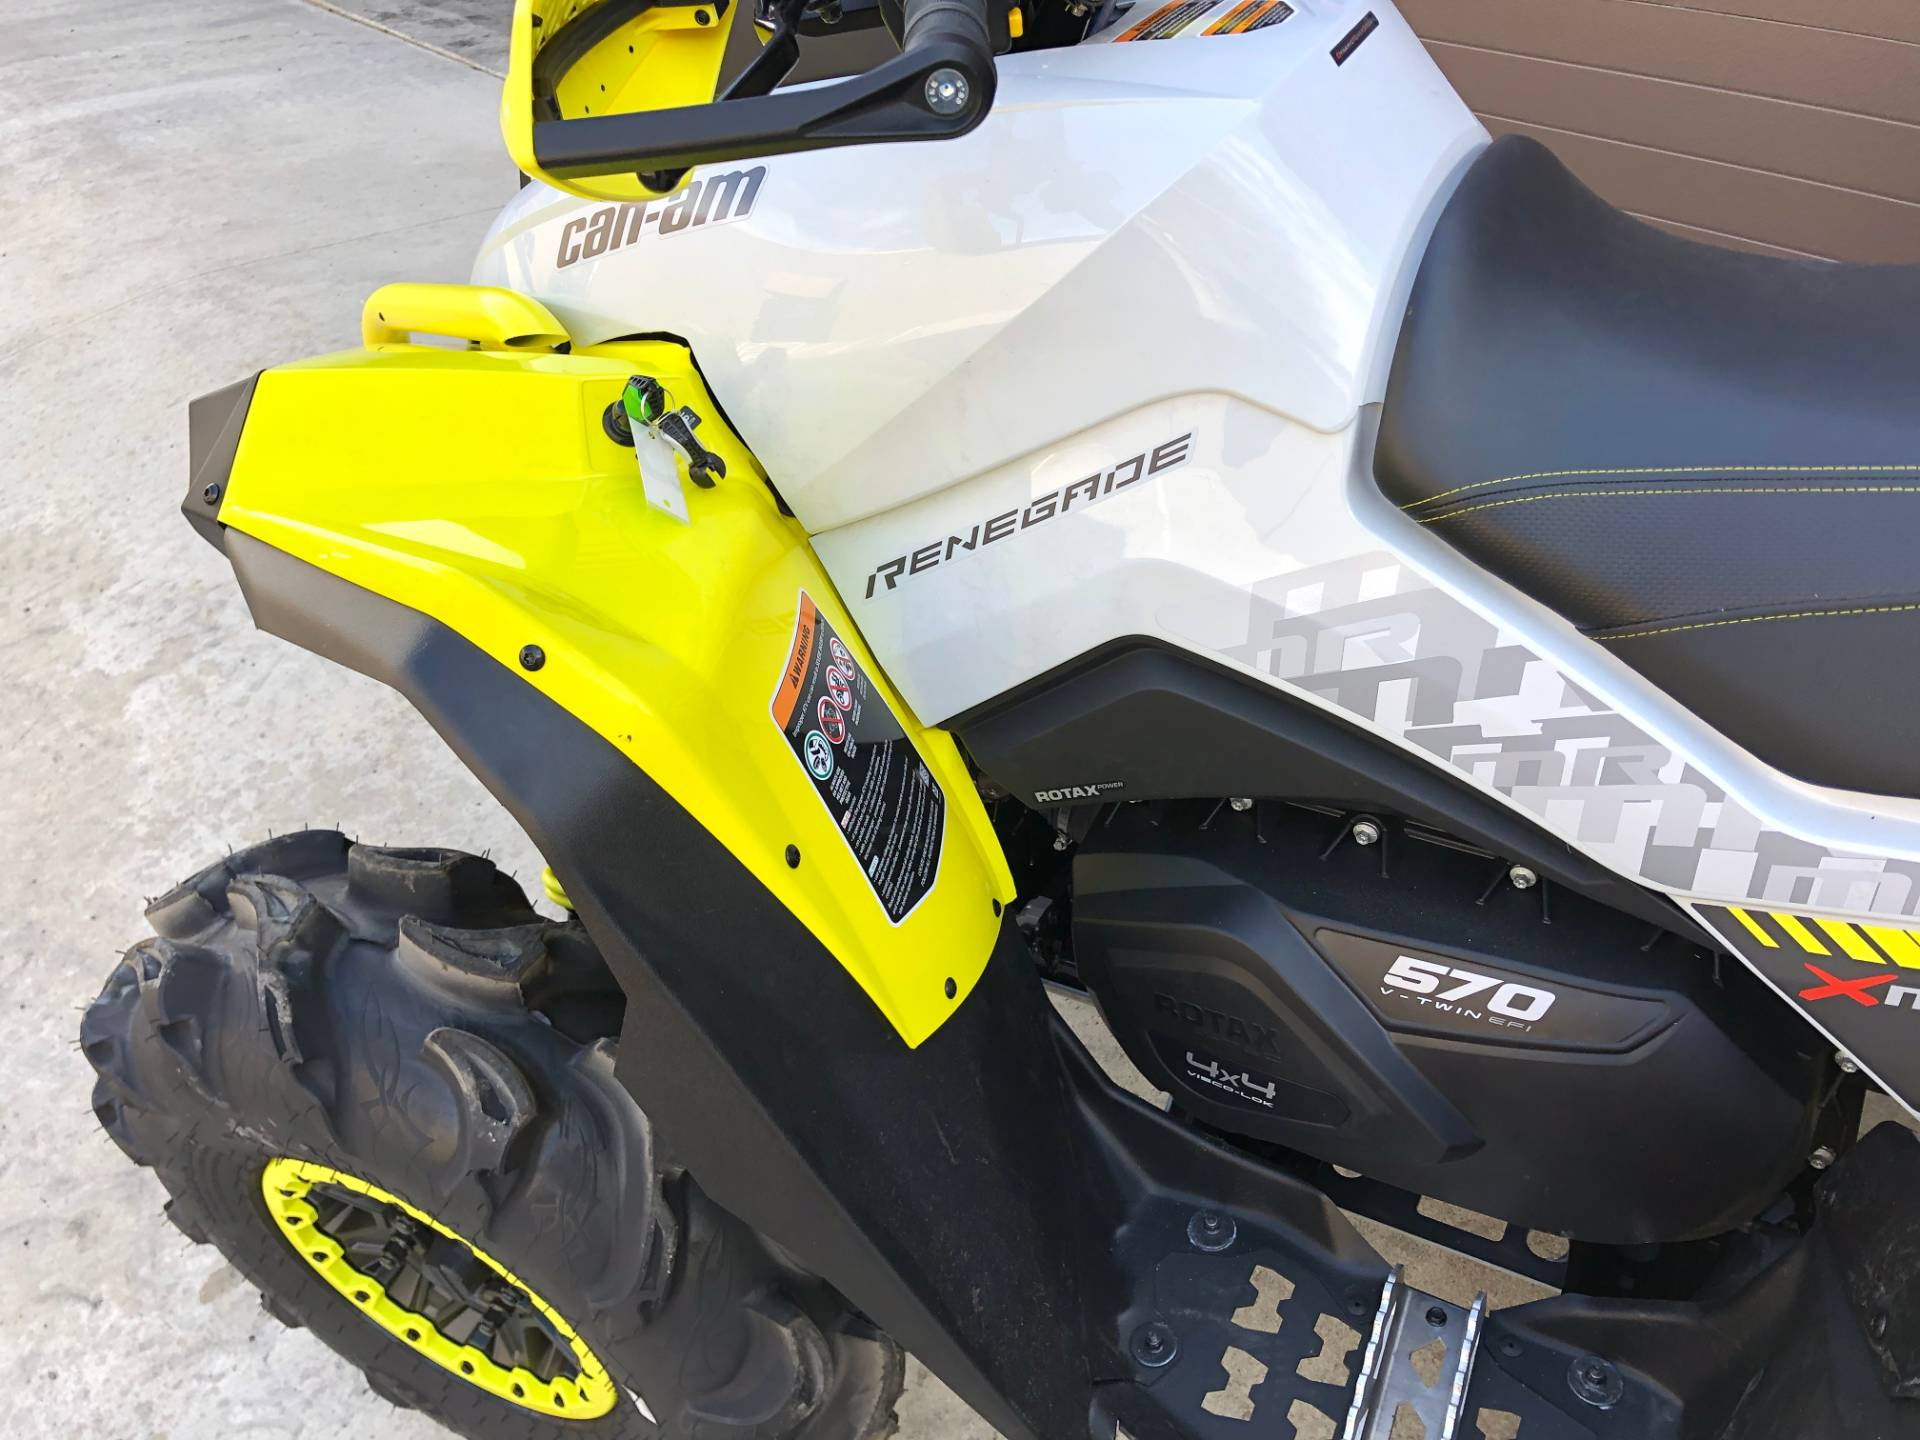 2019 Can-Am Renegade X MR 570 in Tyrone, Pennsylvania - Photo 2